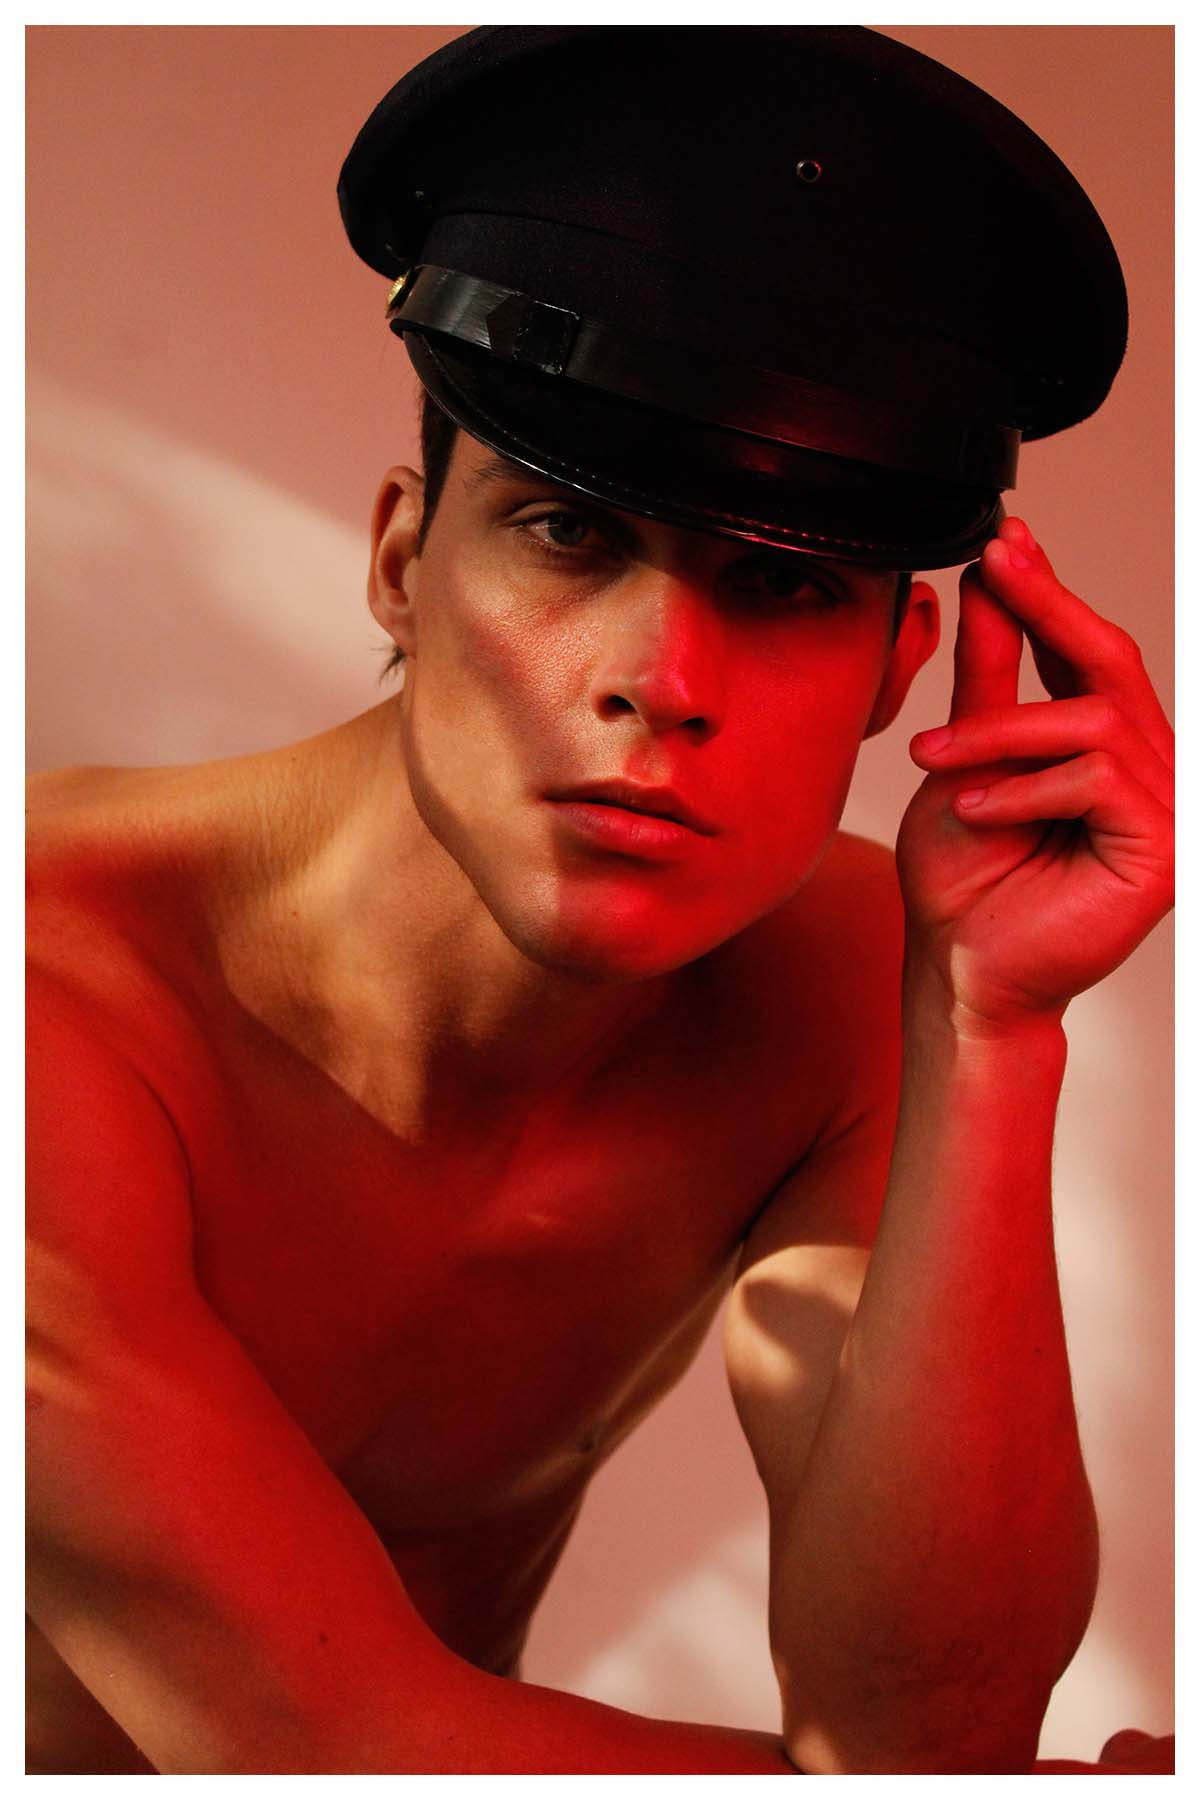 Eduardo Mocelim by Carlos Mora for Brazilian Male Model